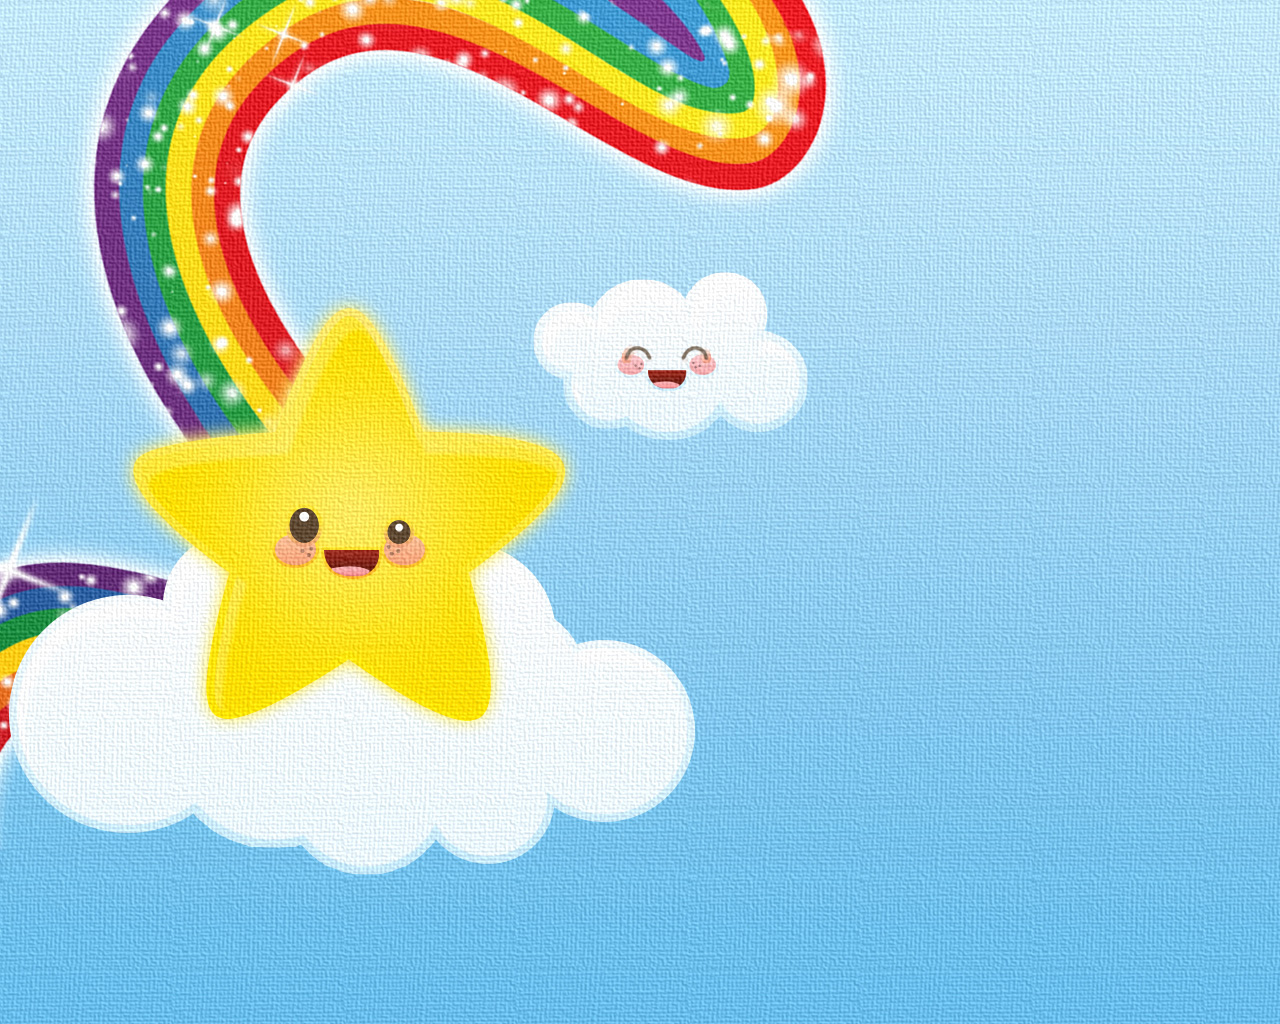 Rainbow-Star-kawaii-535324_1280_1024